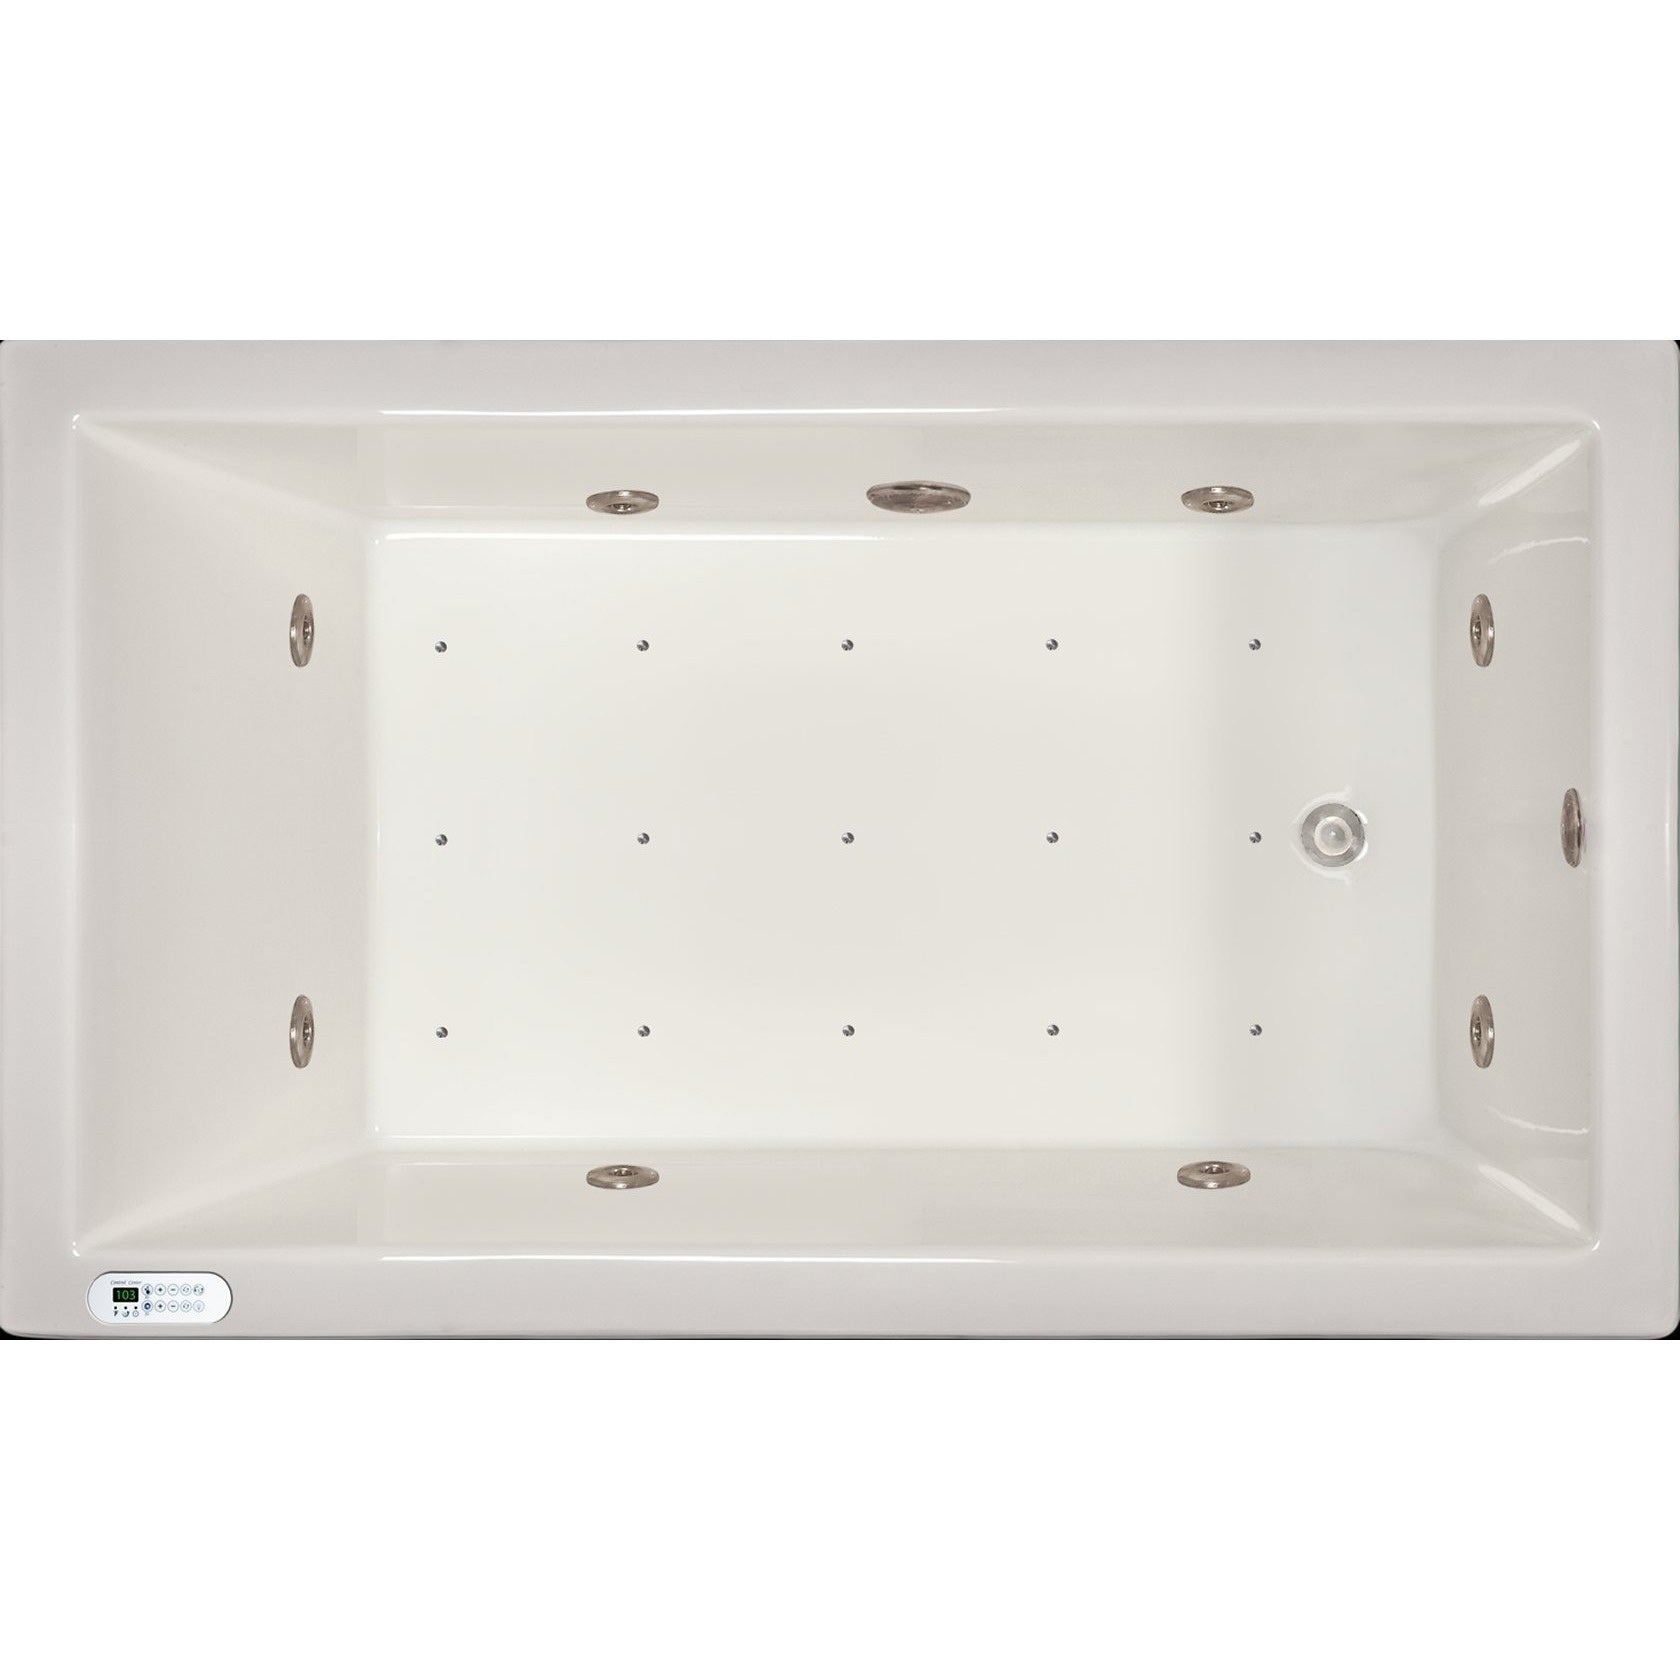 Shop Signature Bath White Acrylic Drop-in Whirlpool Combo Tub with ...